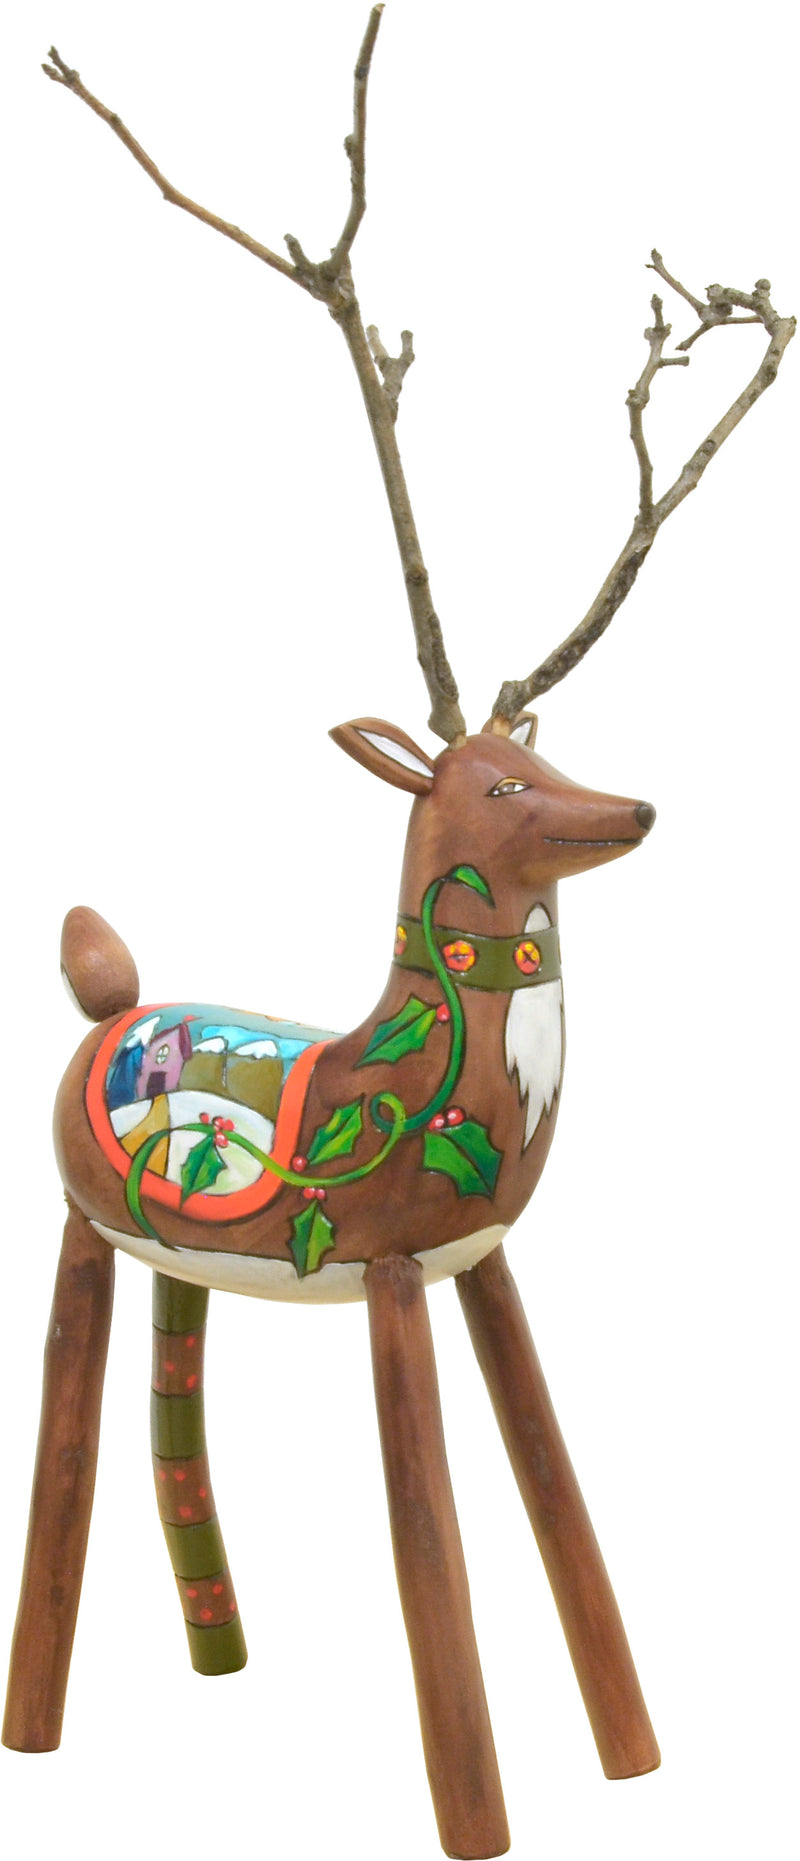 Santa's reindeer with a winter scene on its blanket, front view